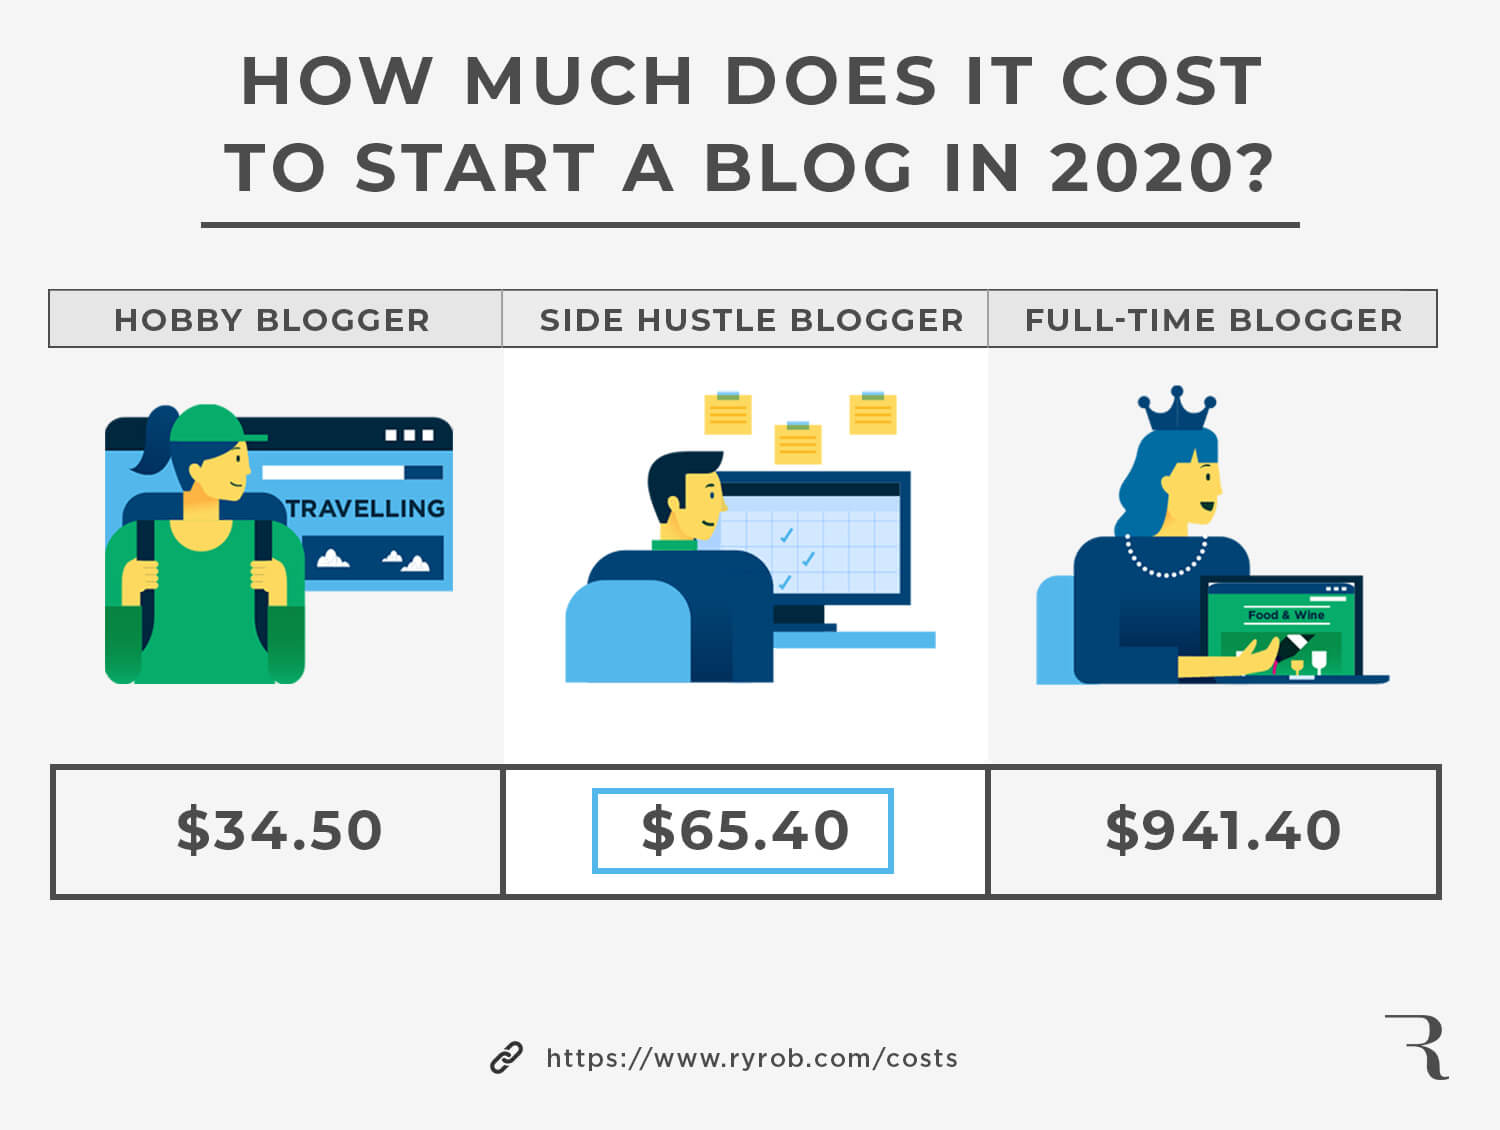 How much does it cost to start a blog this year? Infographic answer